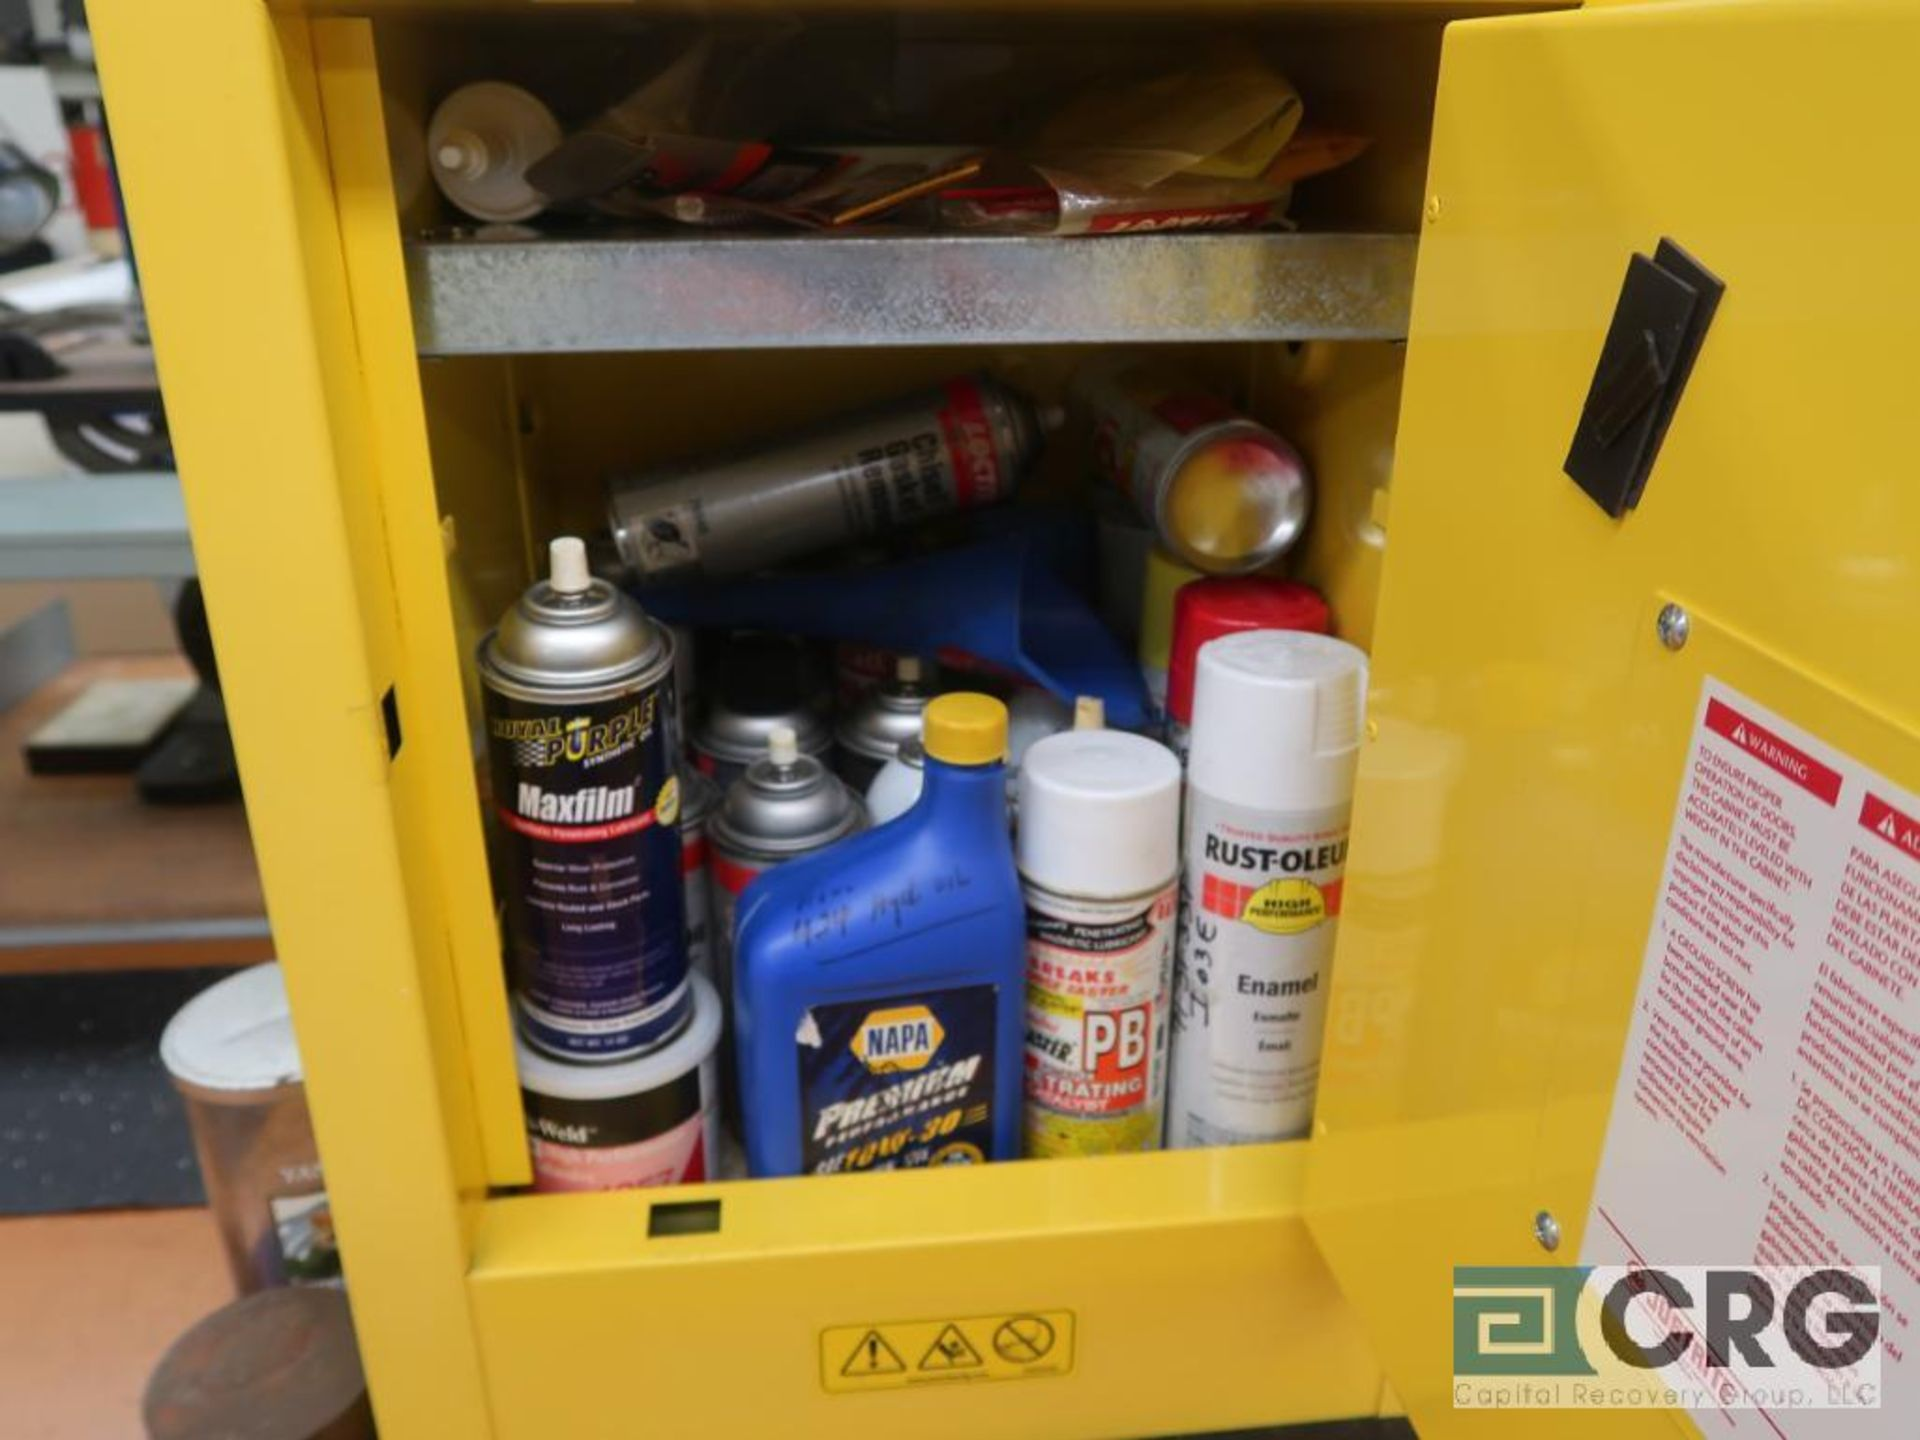 Just Rite 4 Gallon flammable storage cabinet(Dandy Room) - Image 3 of 3